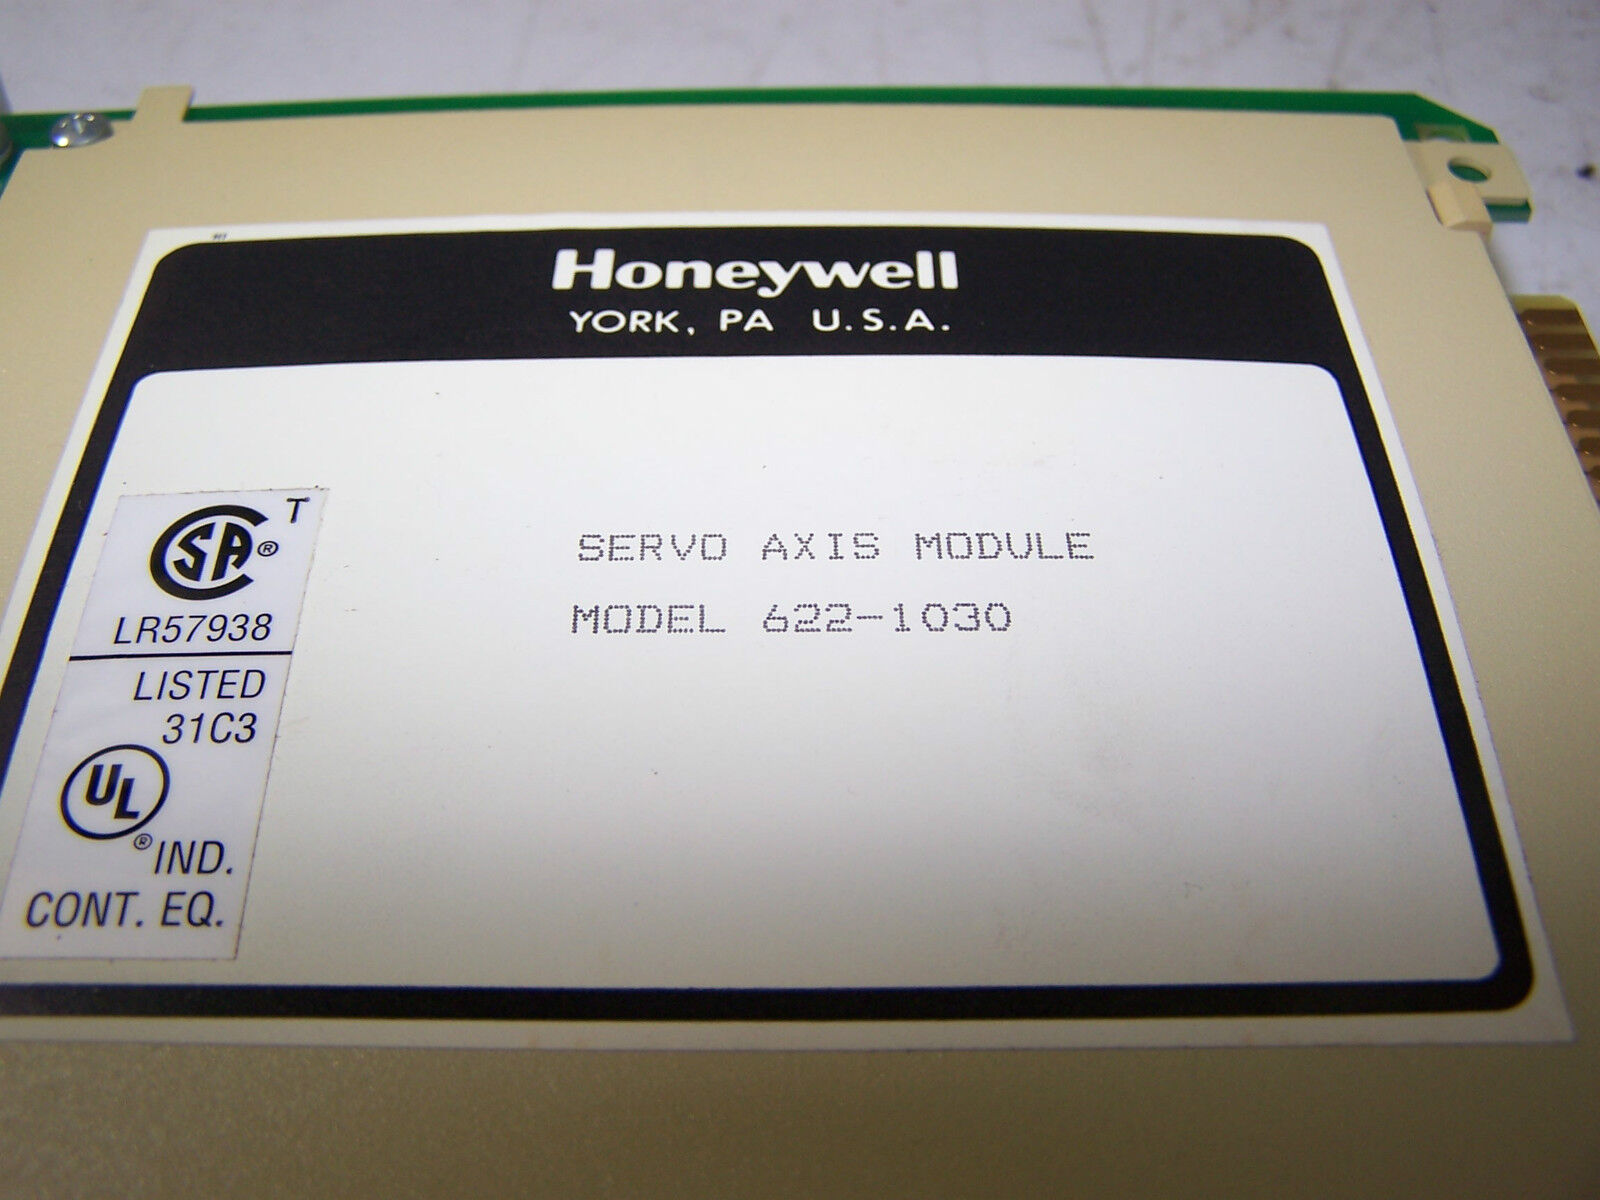 622 1030 HONEYWELL 622-1030 SERVO AXIS MODULE MODEL No